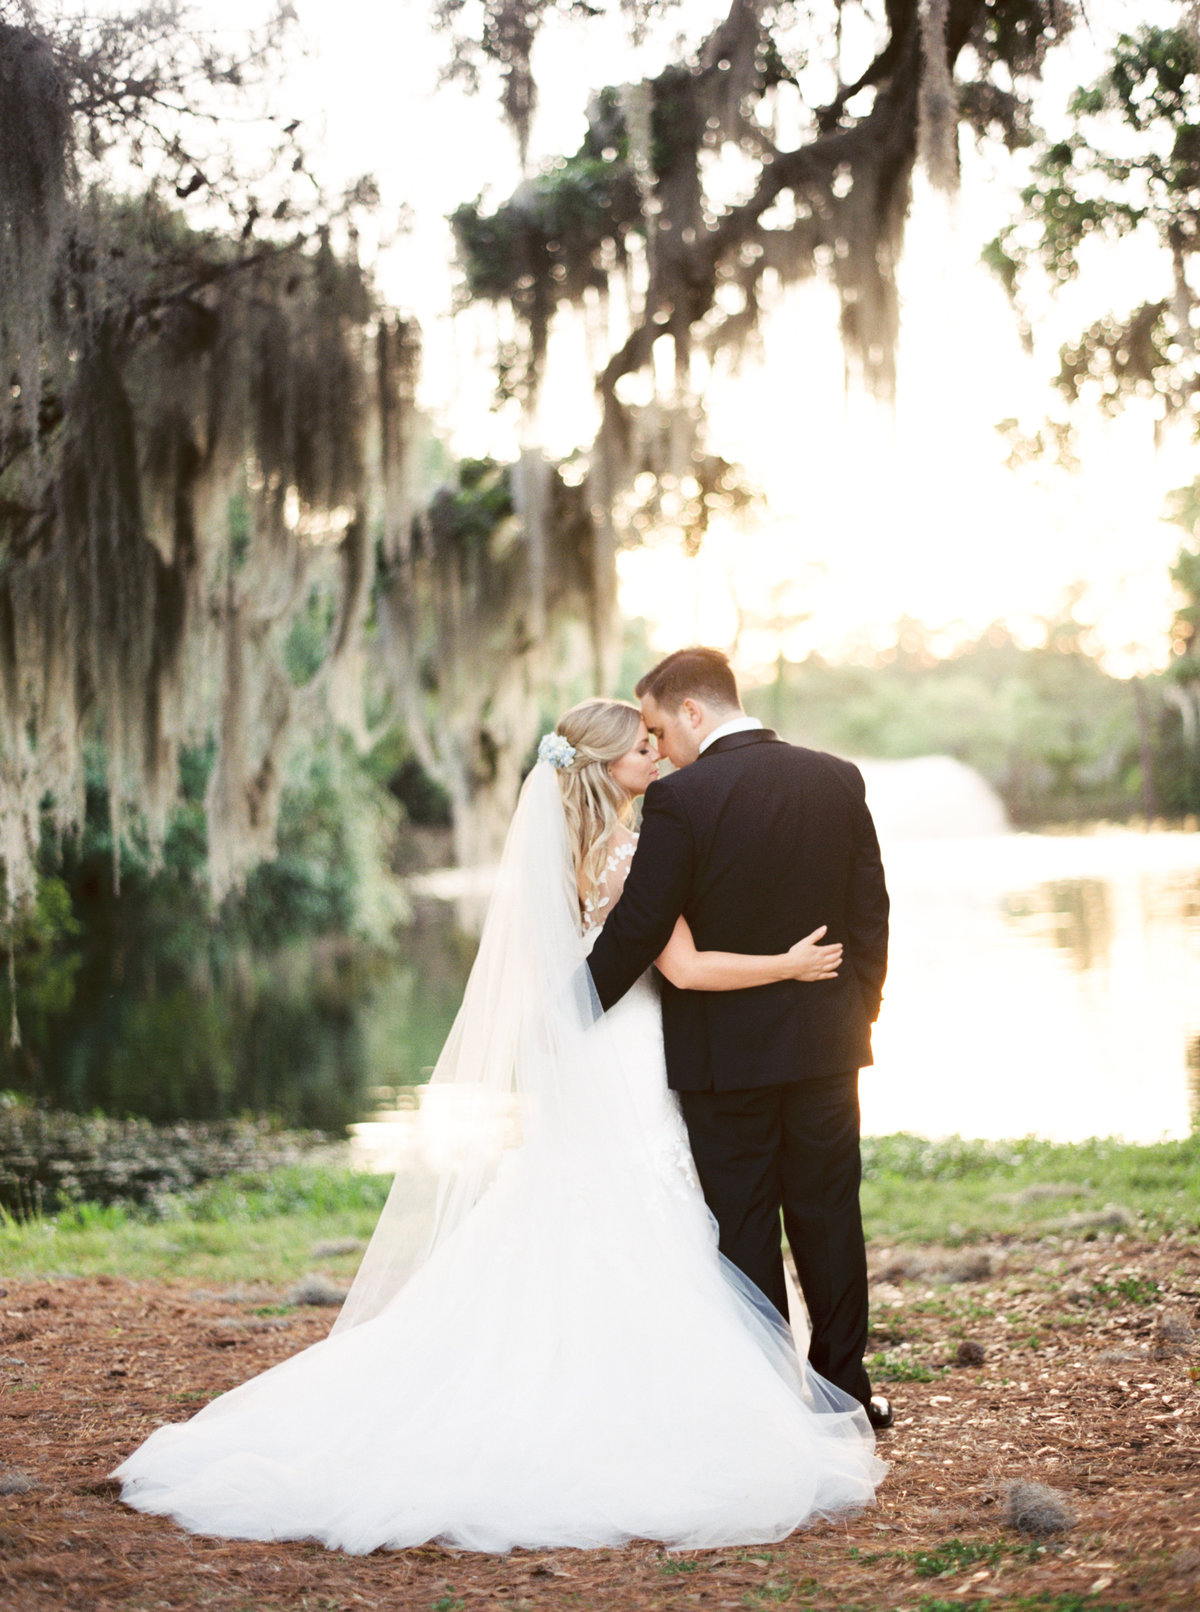 Charleston Wedding Photographer - Mary Claire Photography-12-2